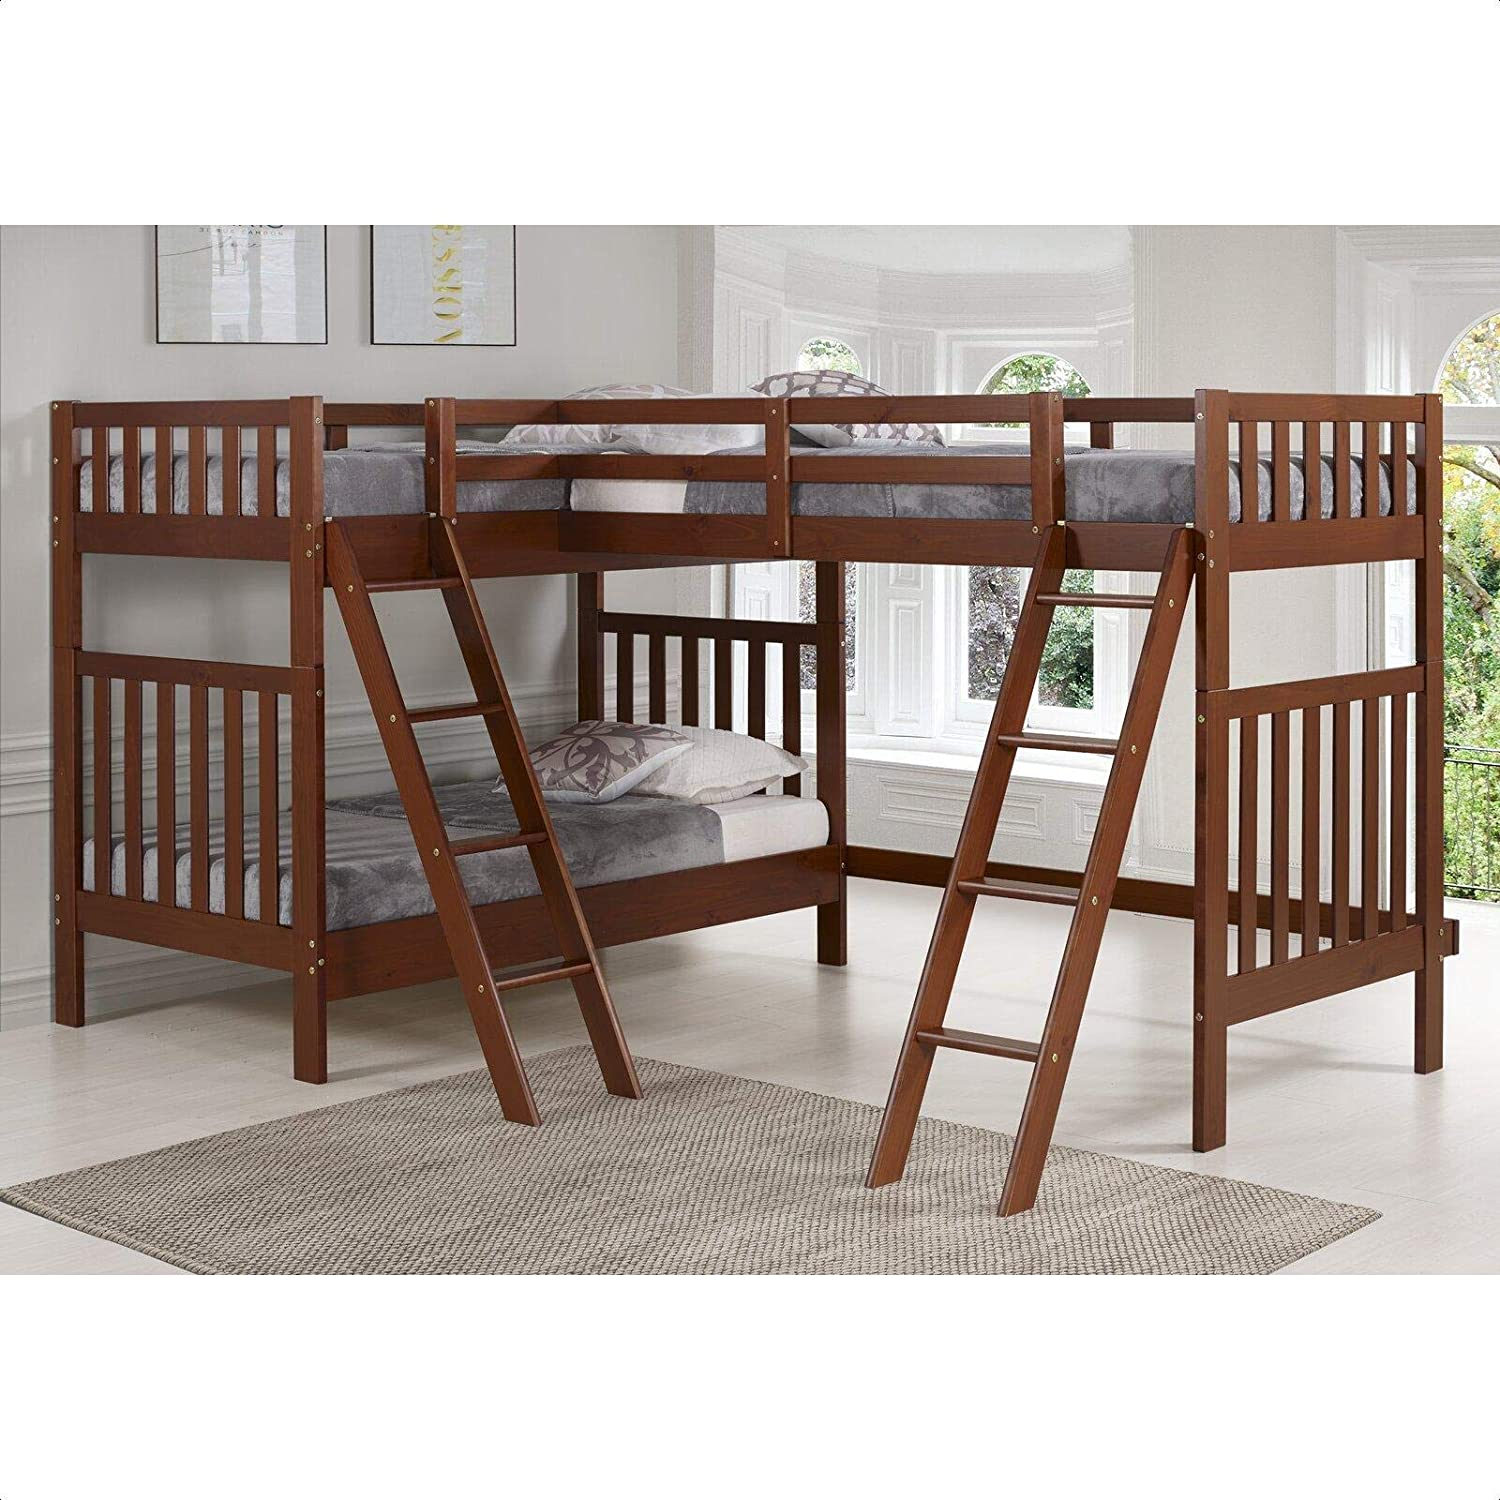 Amazon Com Reasor Twin L Shaped Bunk Bed Kitchen Dining